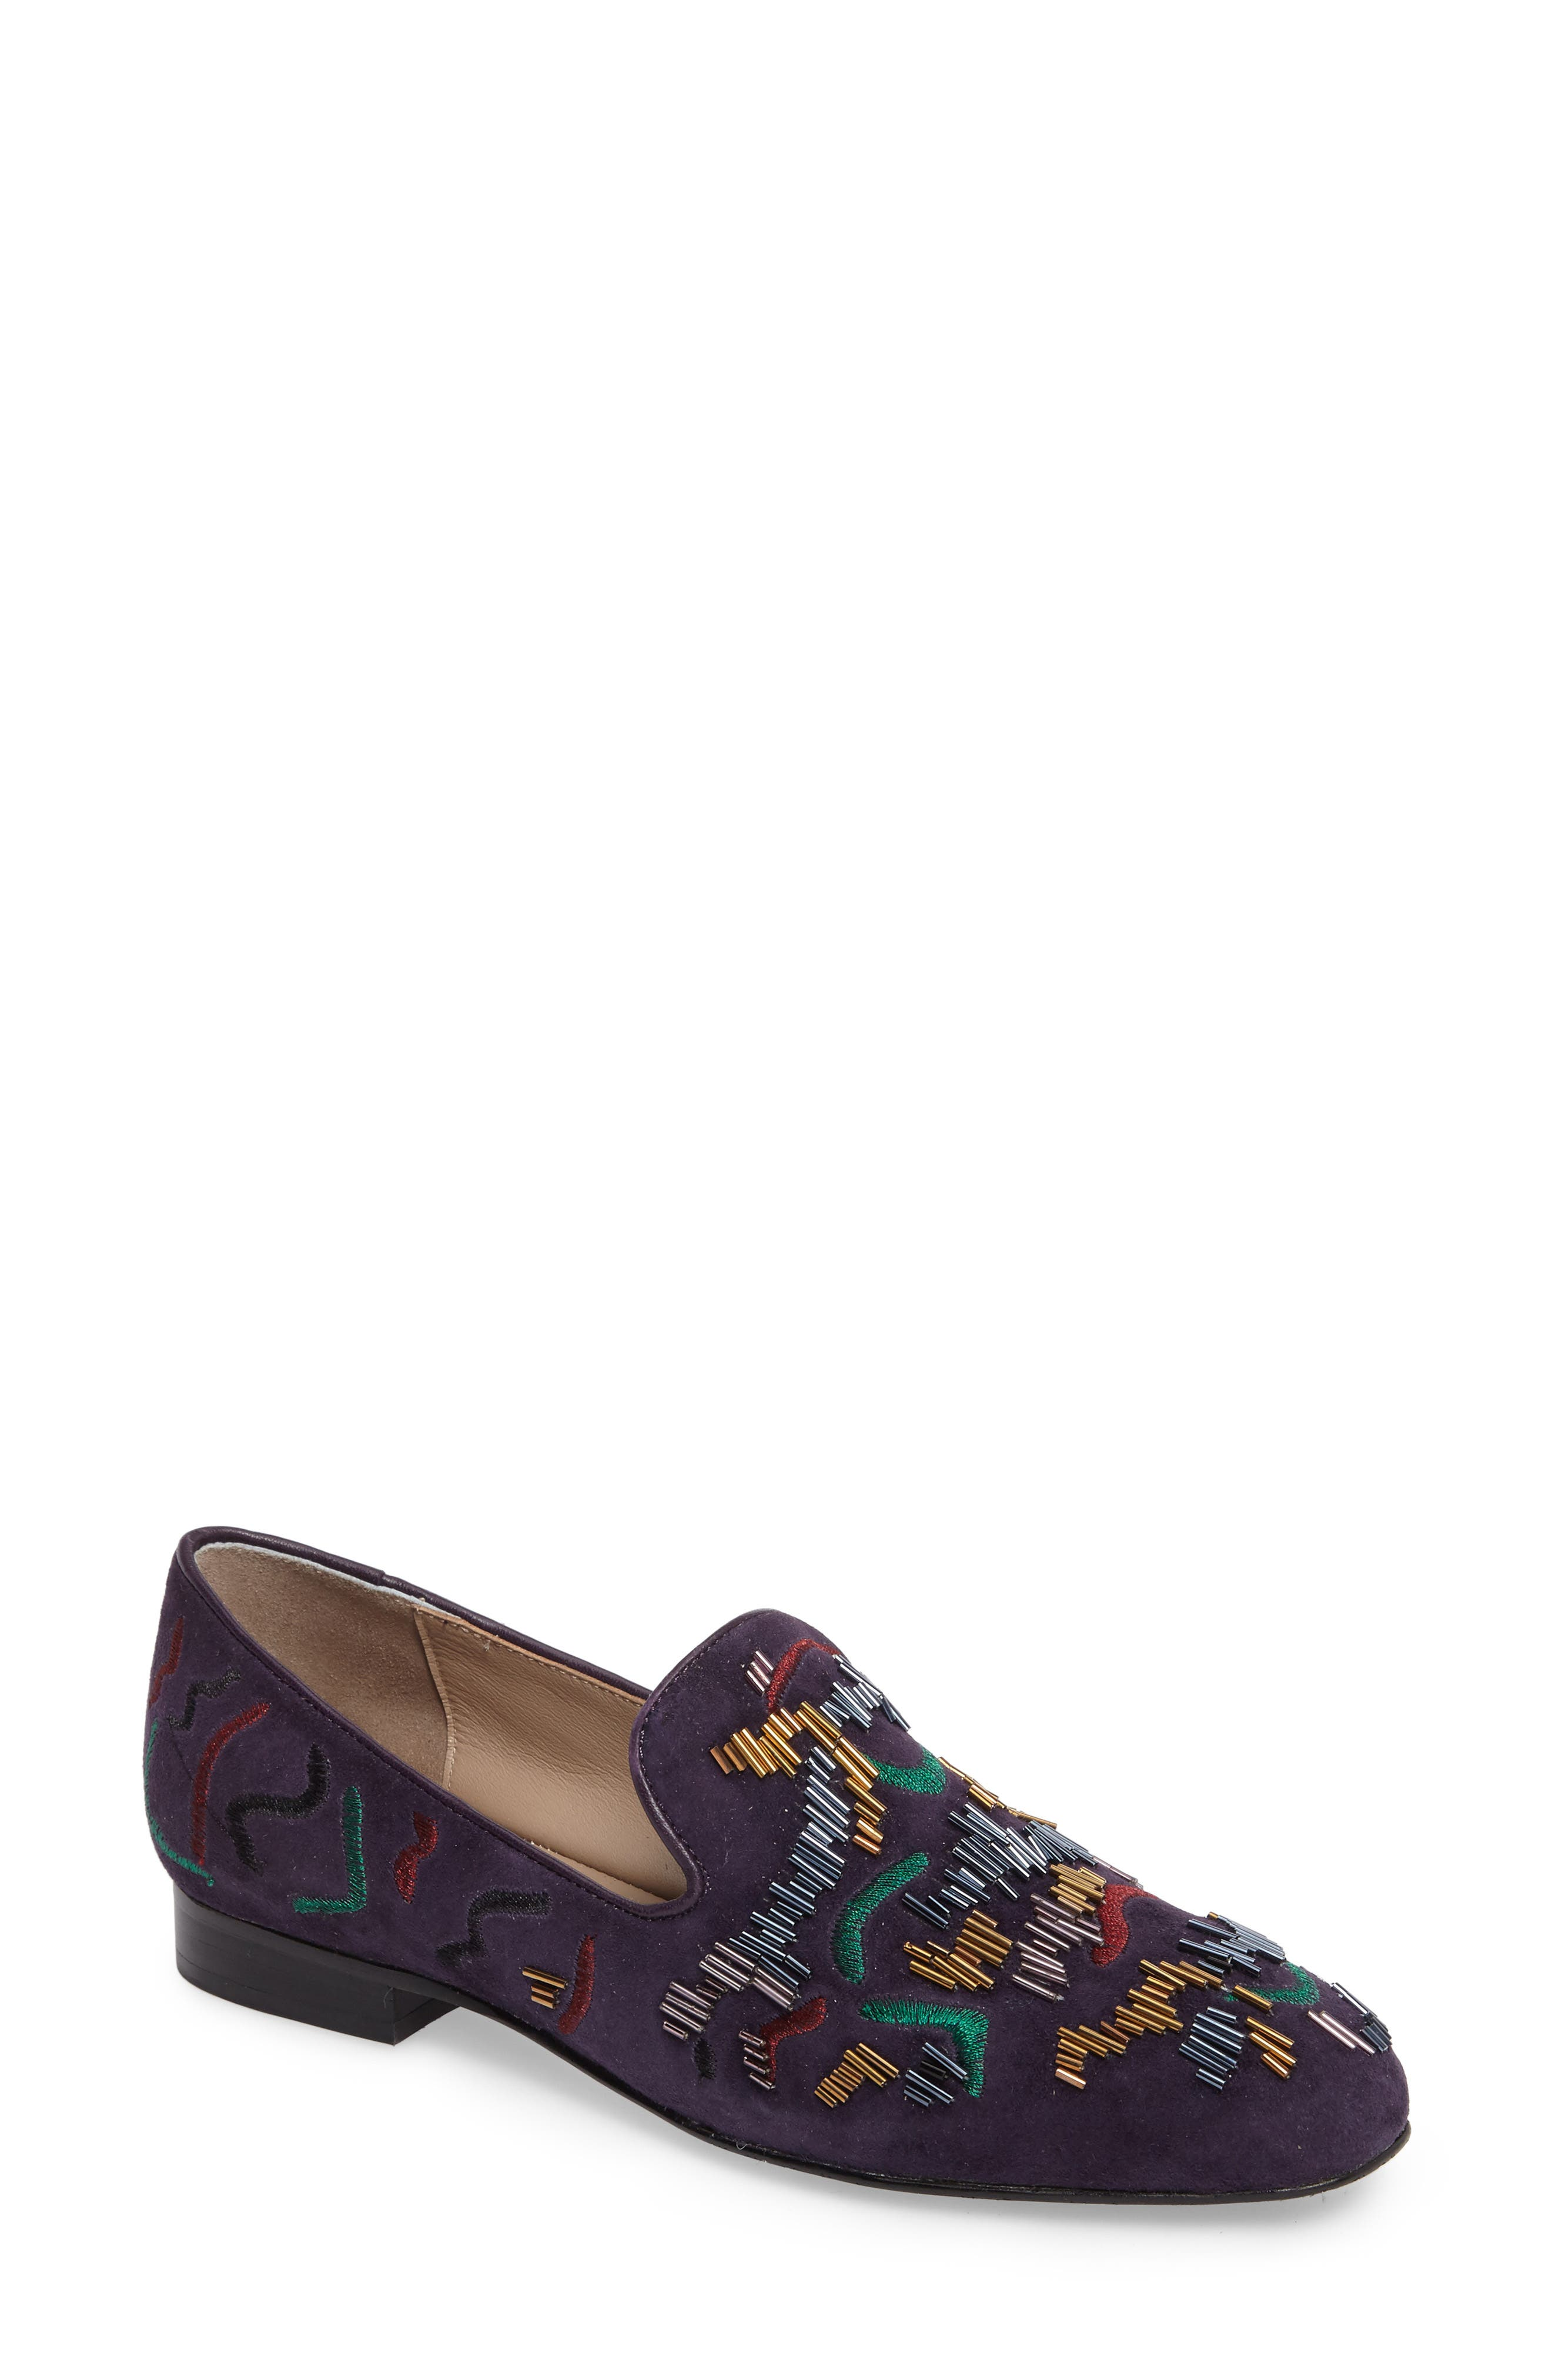 Leanne Beaded Loafer,                             Main thumbnail 1, color,                             654